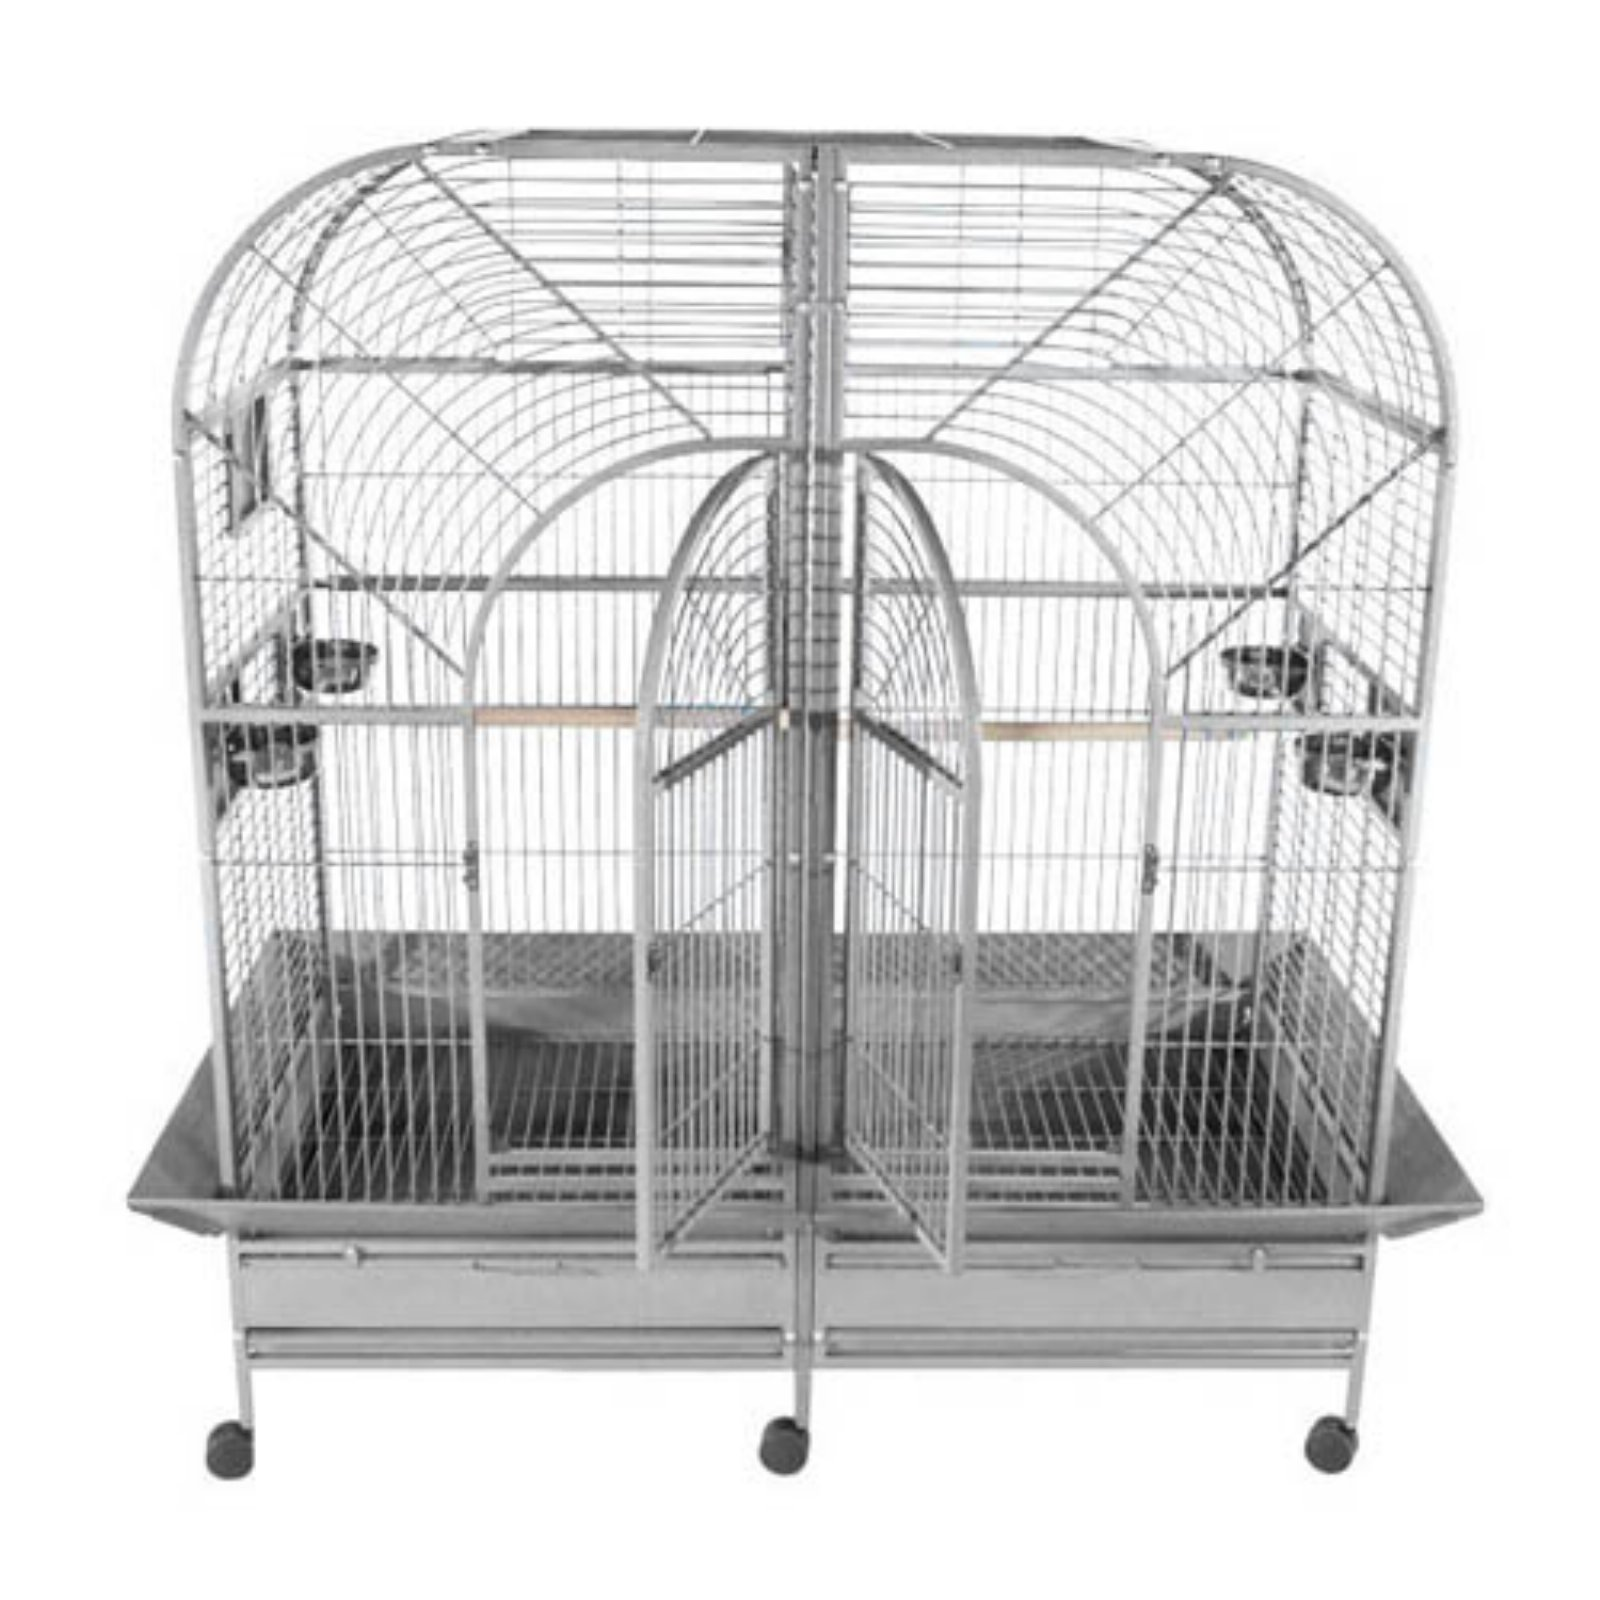 A and E Cage Co. Stainless Steel Double Macaw Bird Cage